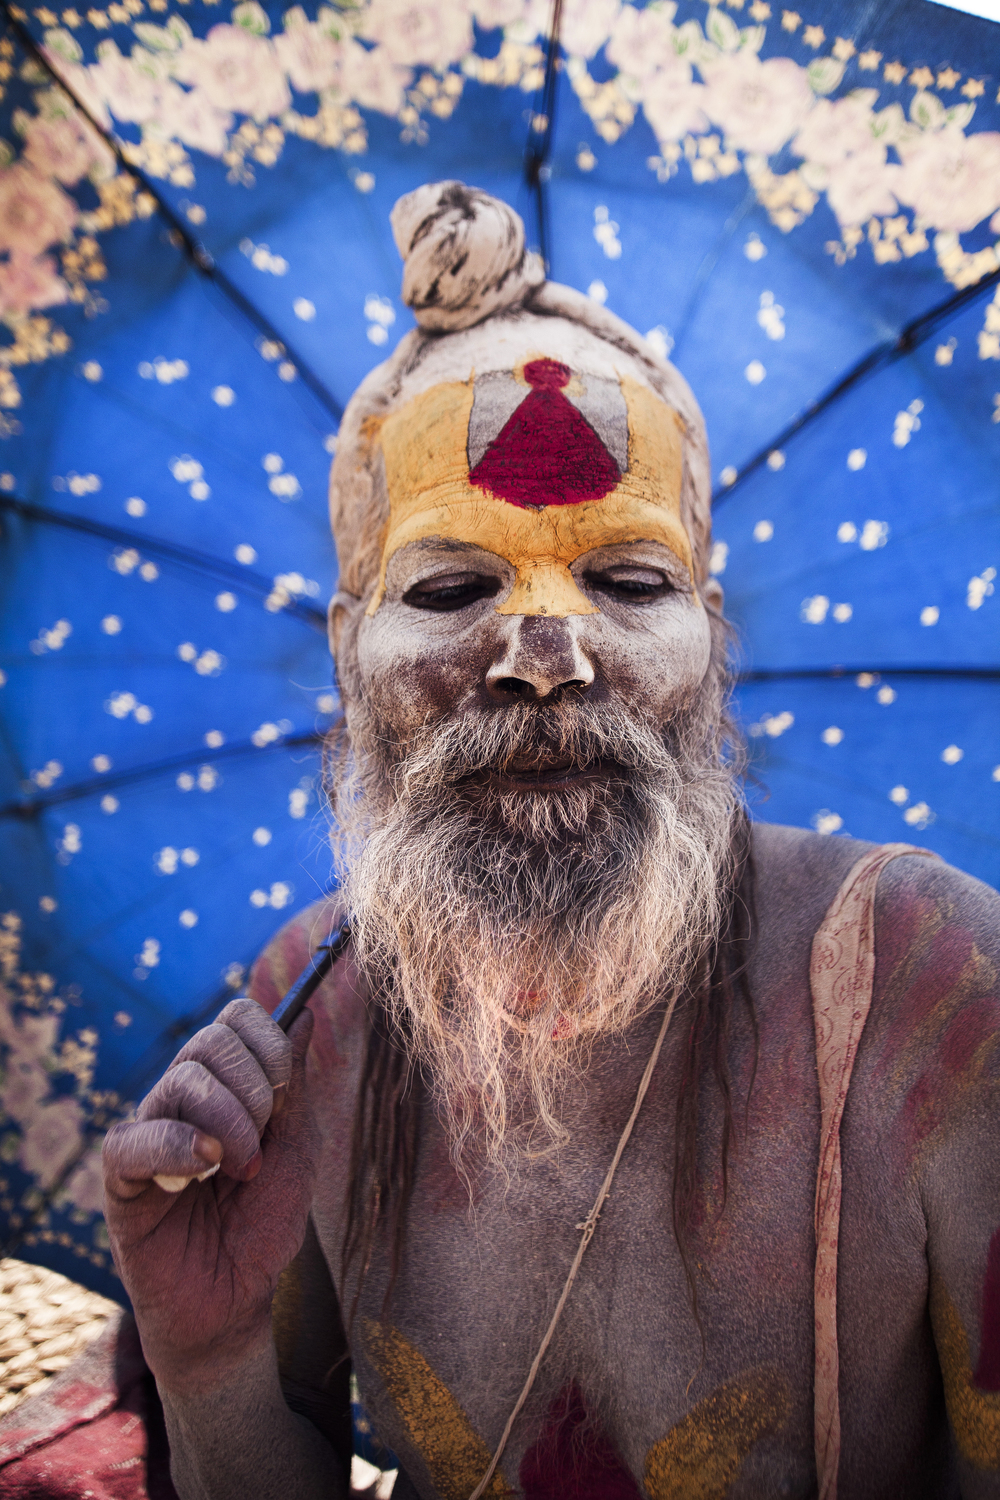 A sadhu shields himself from the midday sun.